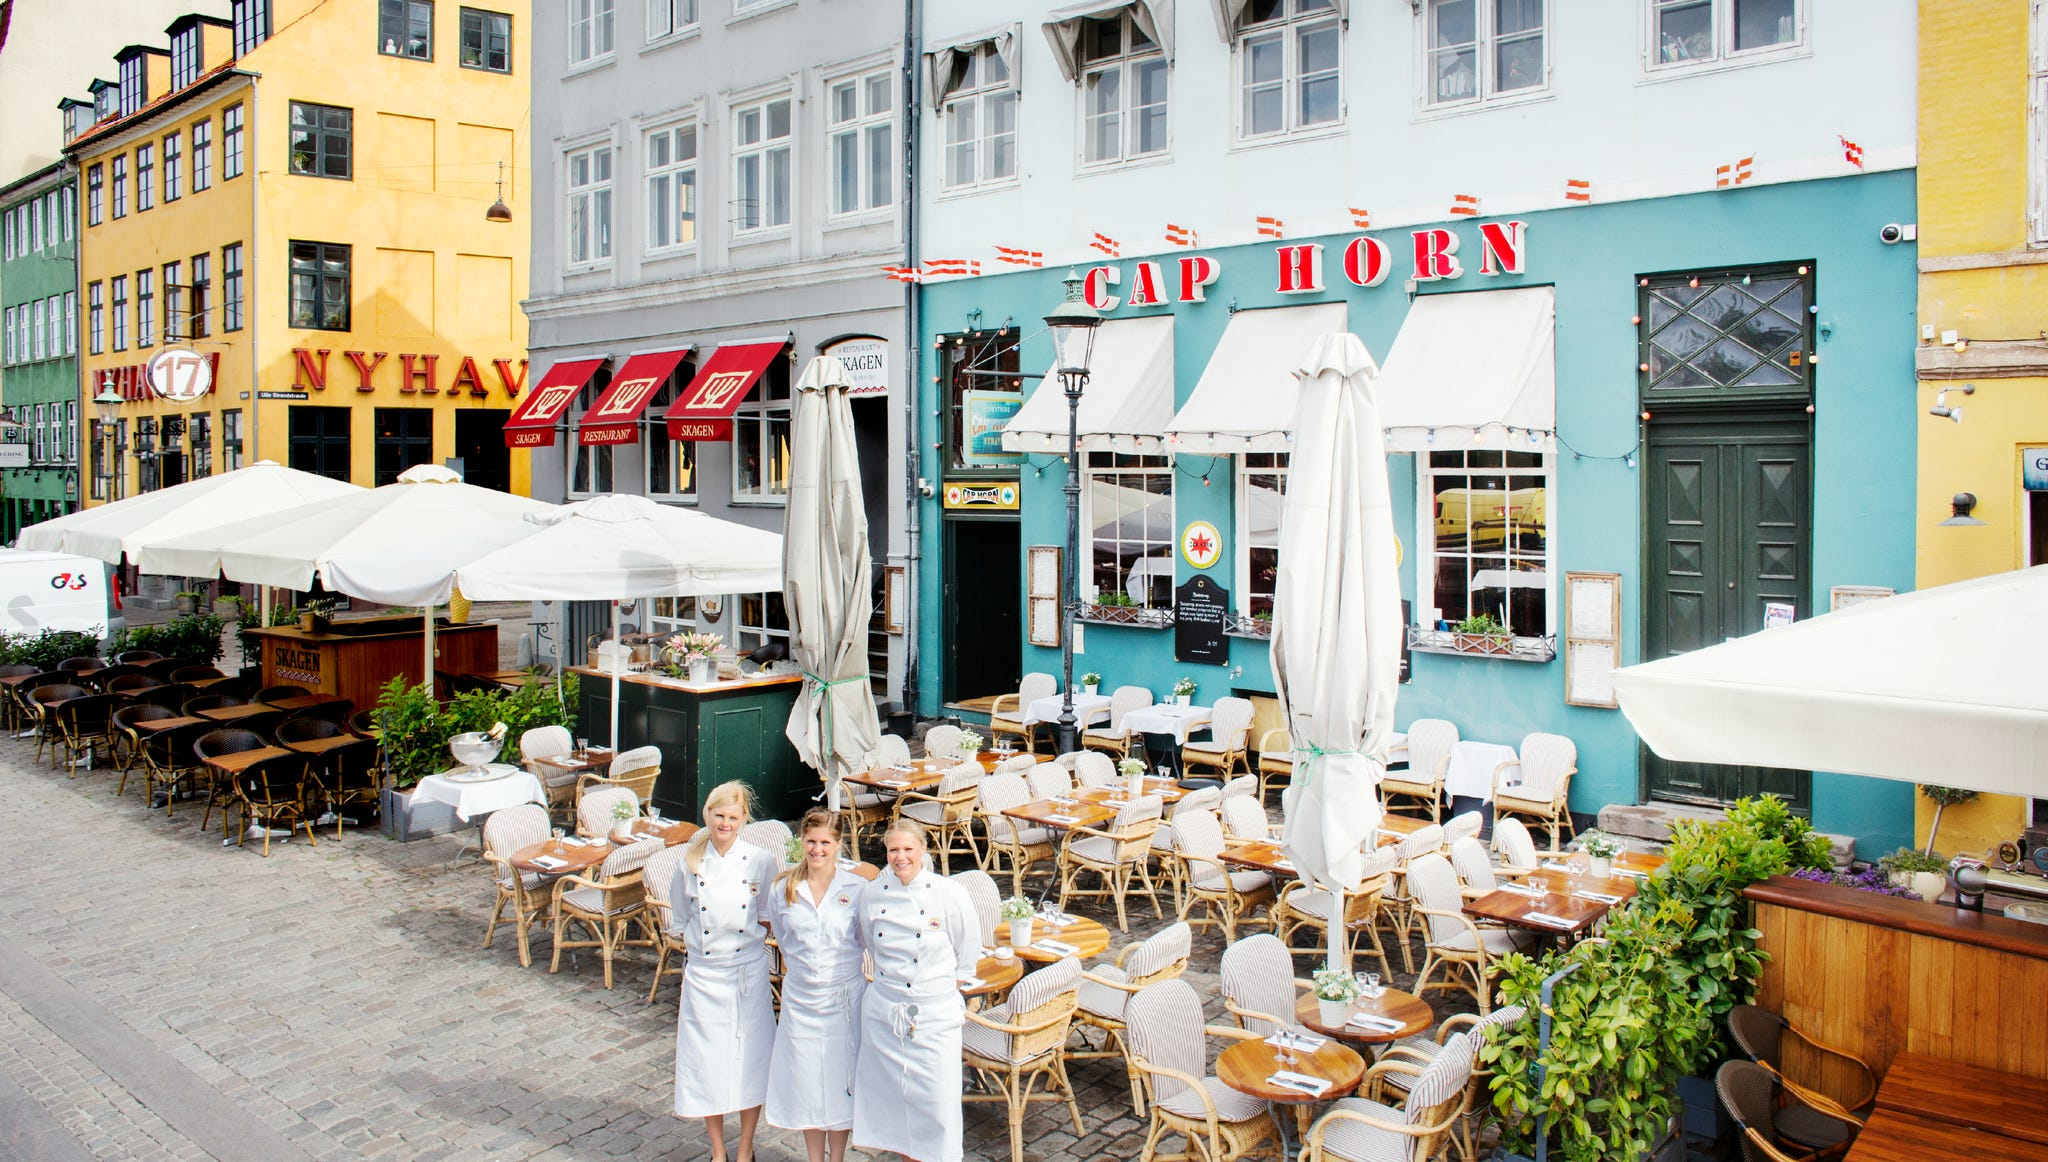 Copenhagen has flourished into one of the world's most creative culinary scenes.